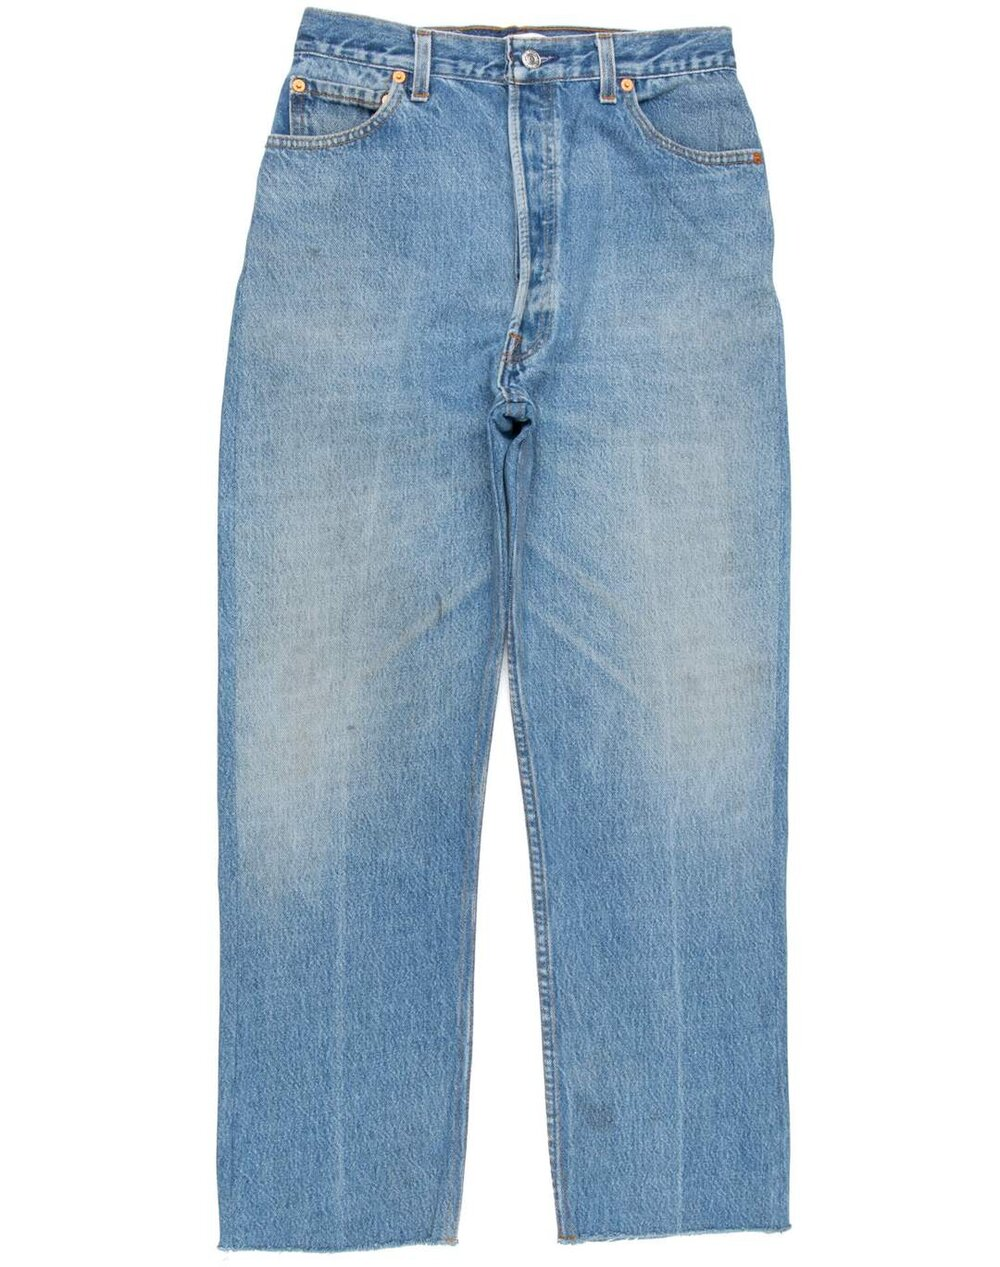 RE/DONE Levi's Stove Jeans